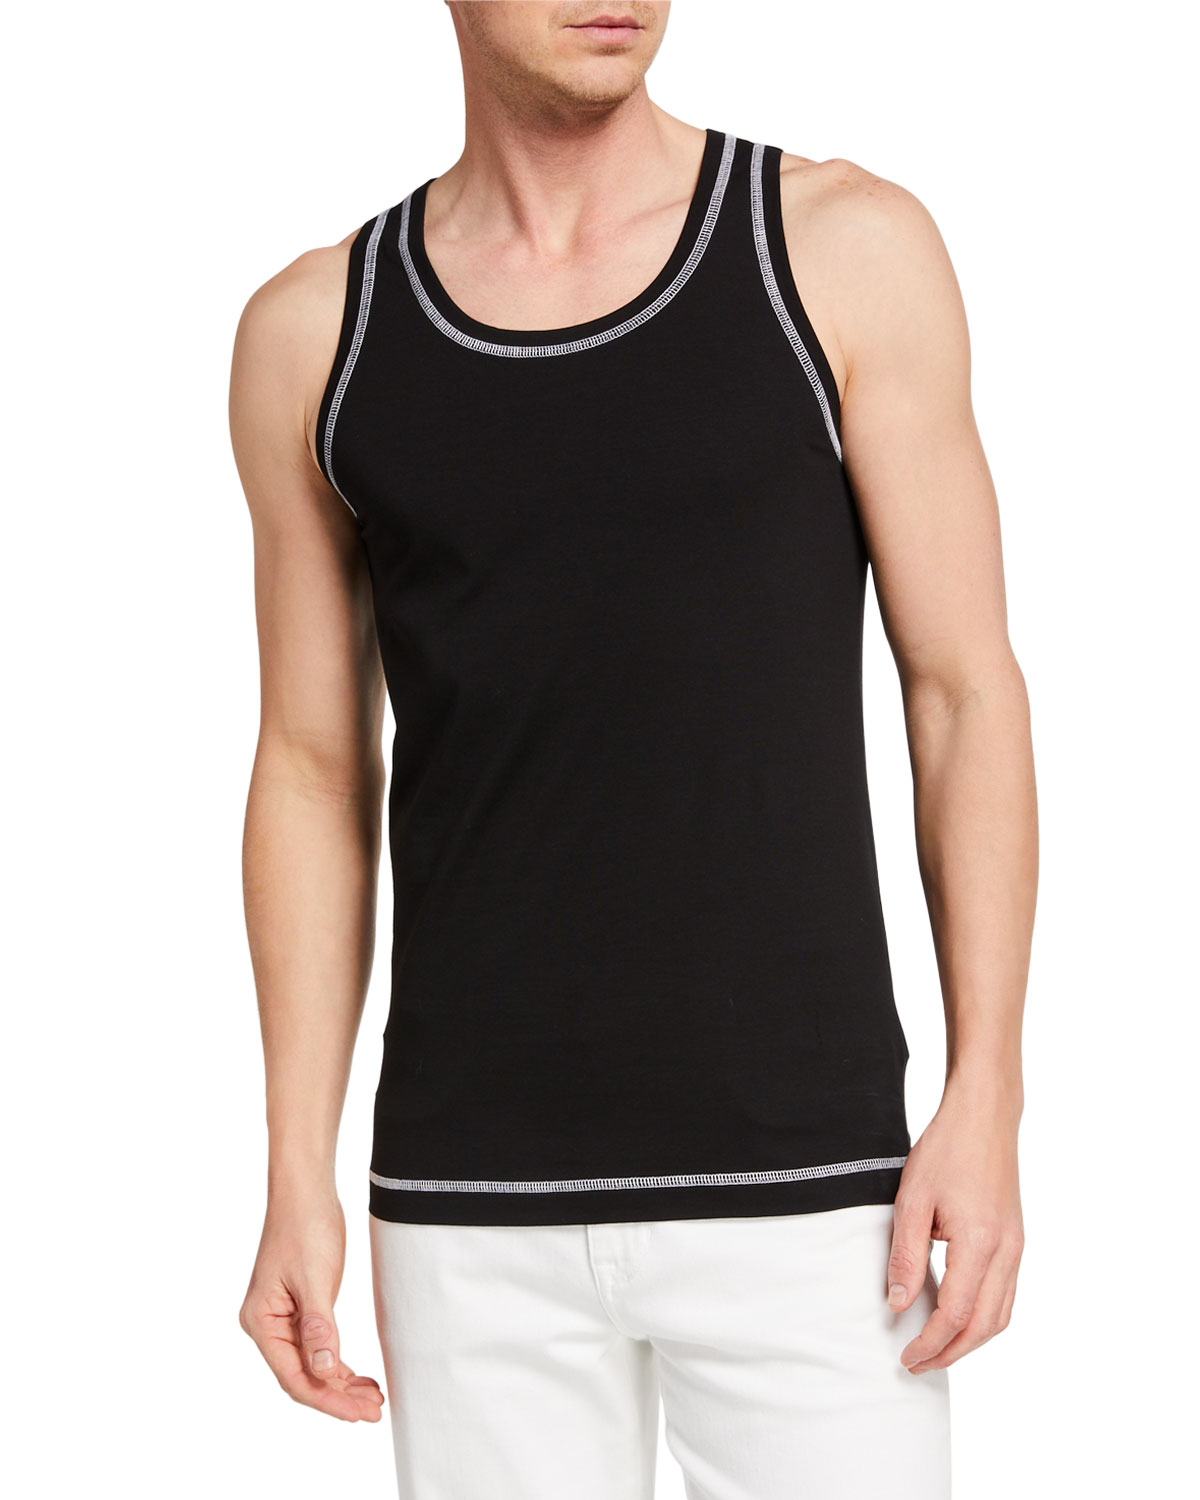 Dolce & Gabbana Men's Jersey Tank Top w/ Contrast Stitching